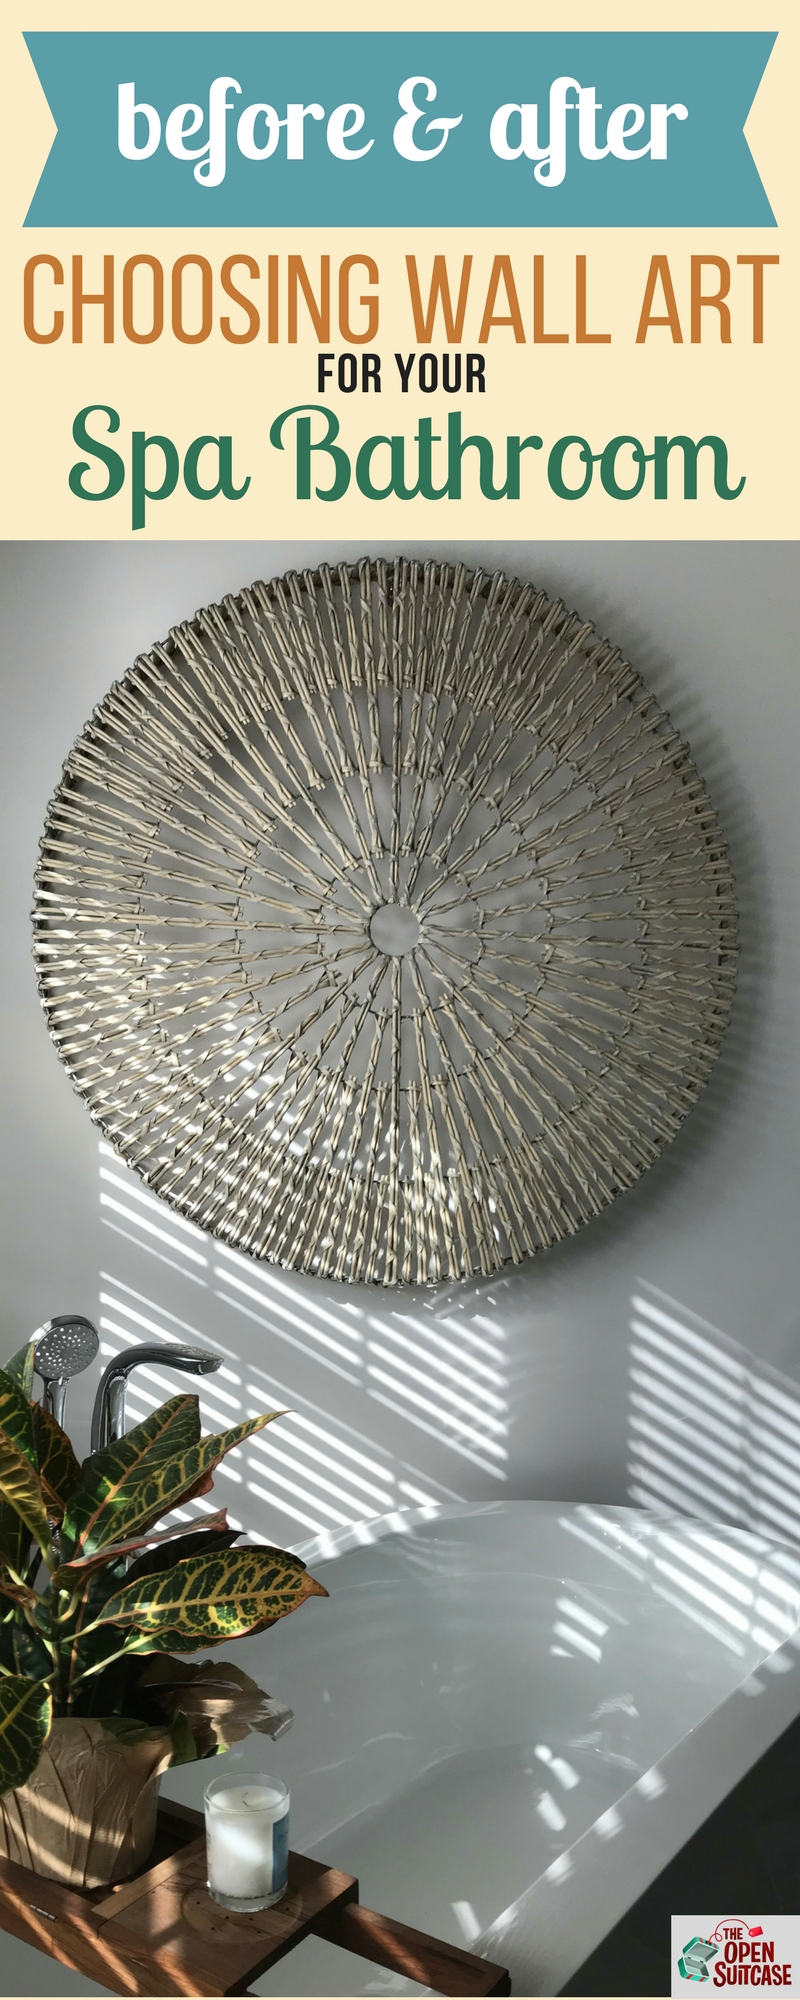 Wondering what to hang in your master bath to recreate the feel of your favorite resort's spa bathroom? Consider one big piece of wall art, like this woven wheel from Pottery Barn.